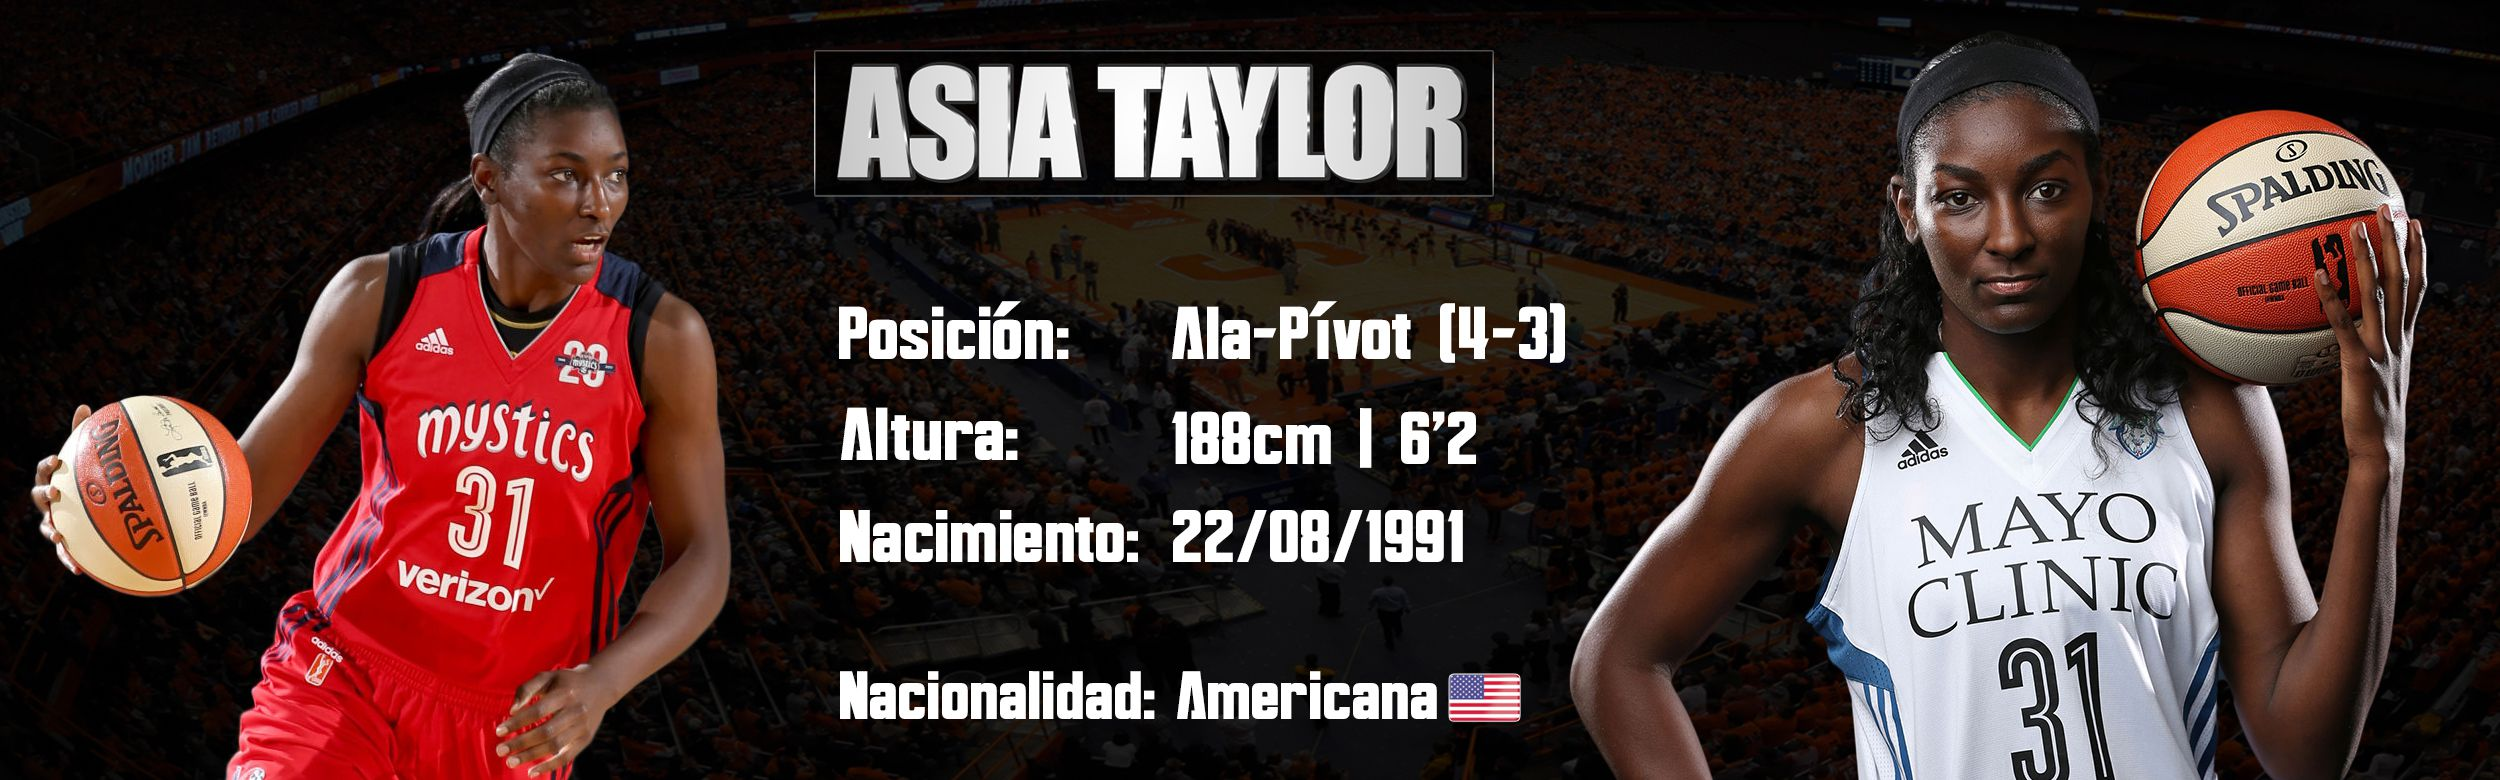 Asia Taylor